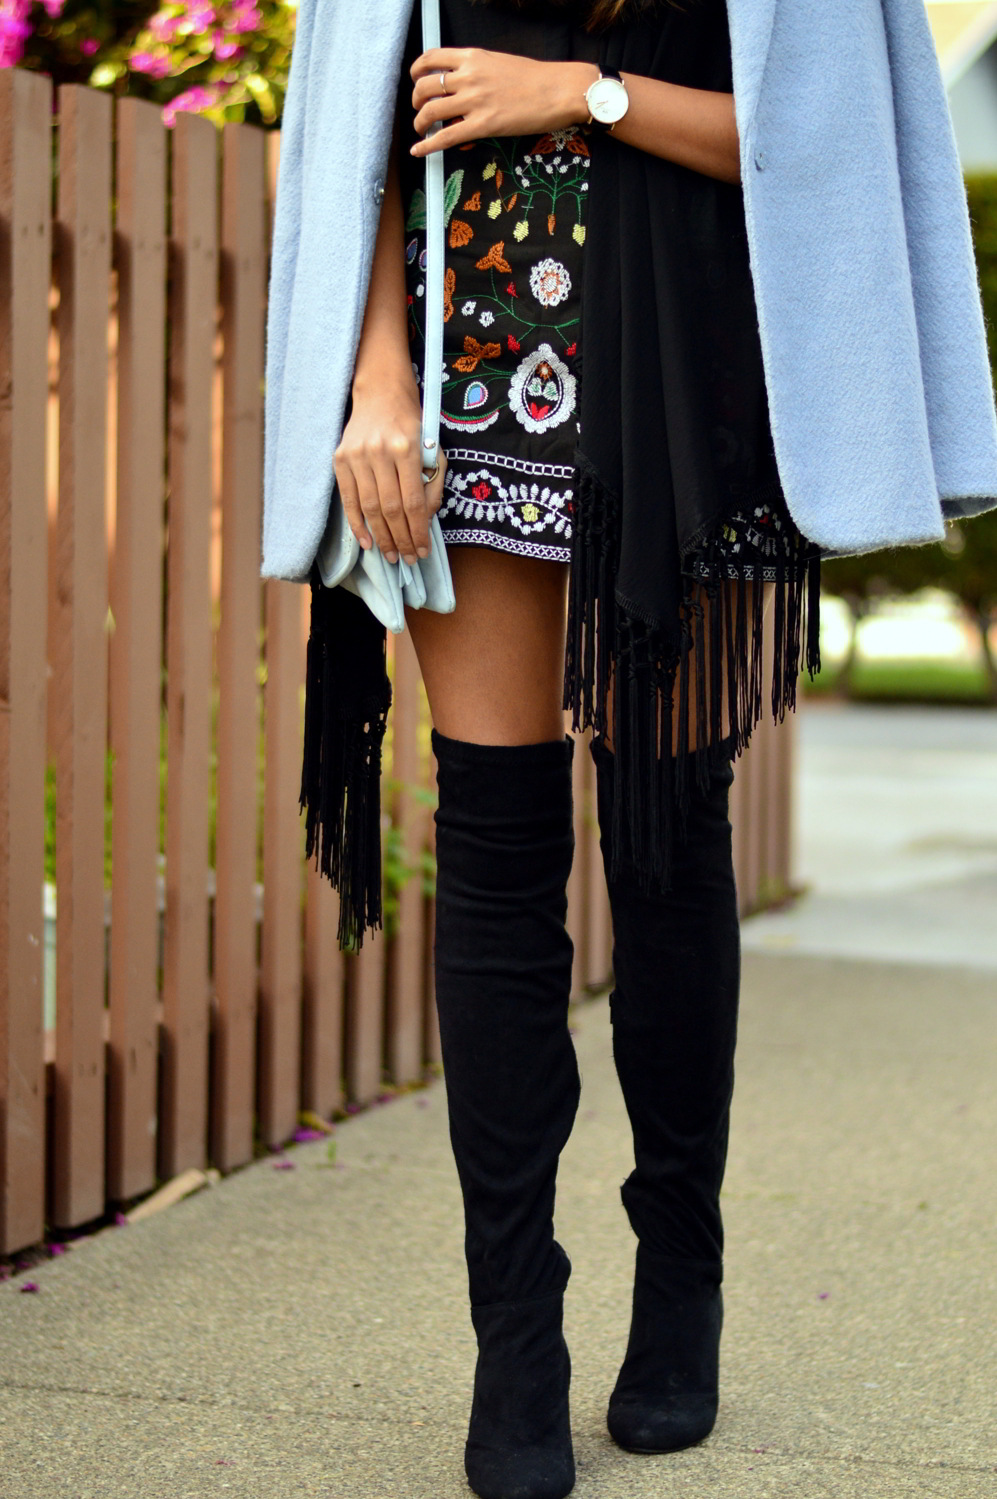 embroidered-skirt-fringe-blouse-winter-layers-blogger--over-the-knee-boots 6